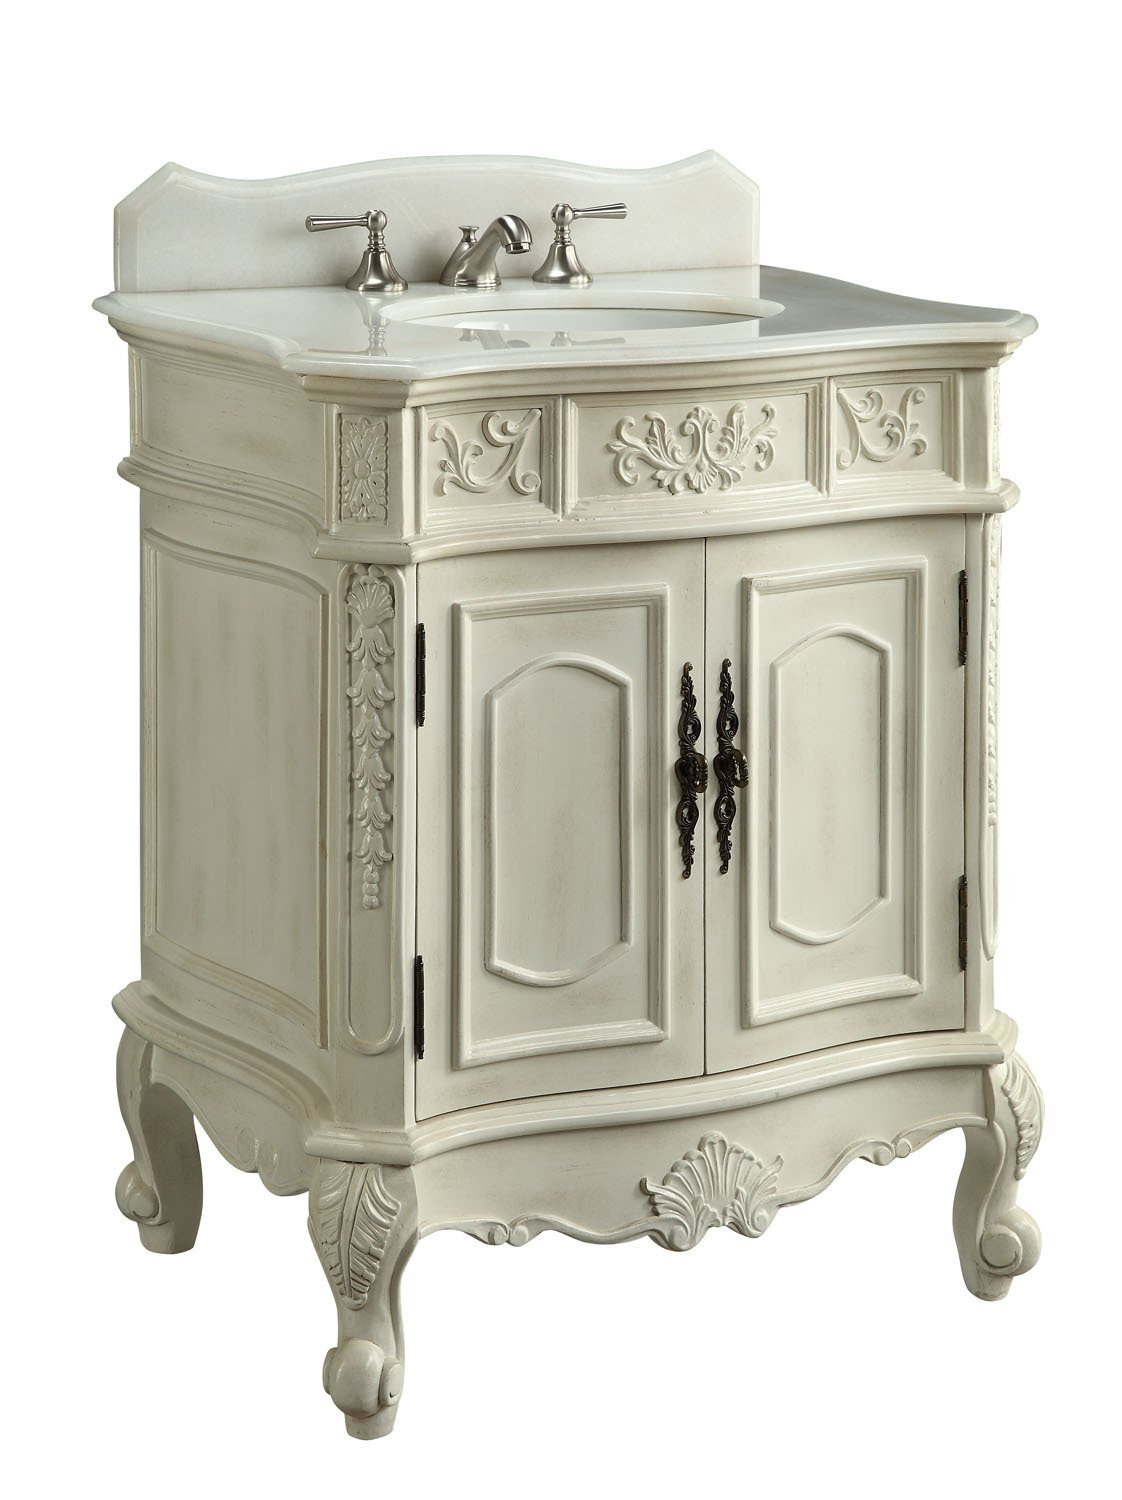 Adelina 30 inch antique white single sink bathroom vanity for Bathroom 30 inch vanity